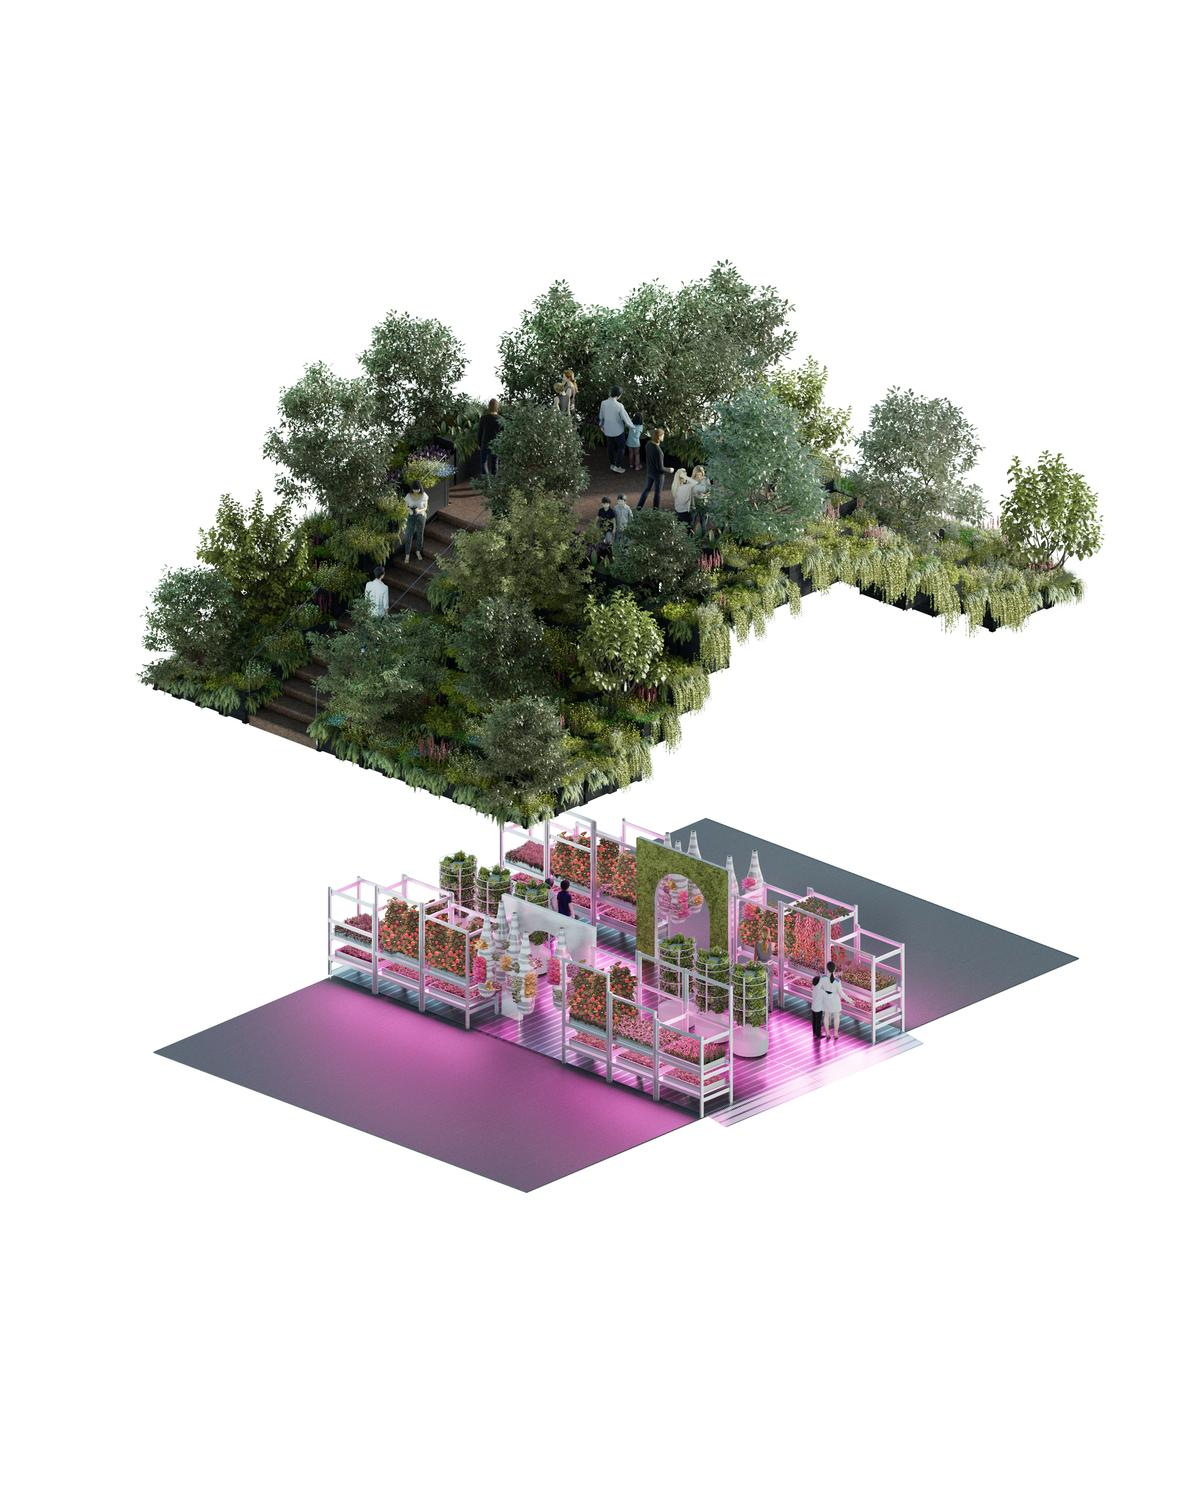 James Futcher, creative leader at IKEA Range and Supply, said the collaboration is 'about bringing attention to the future of the environment'. / IKEA